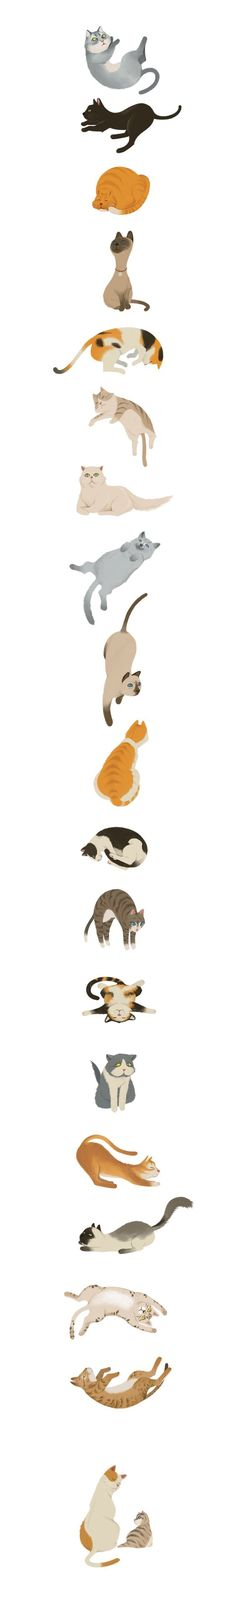 (1) Cats by Wonho Jung, via Behance | For The Love Of Cats | Pinterest